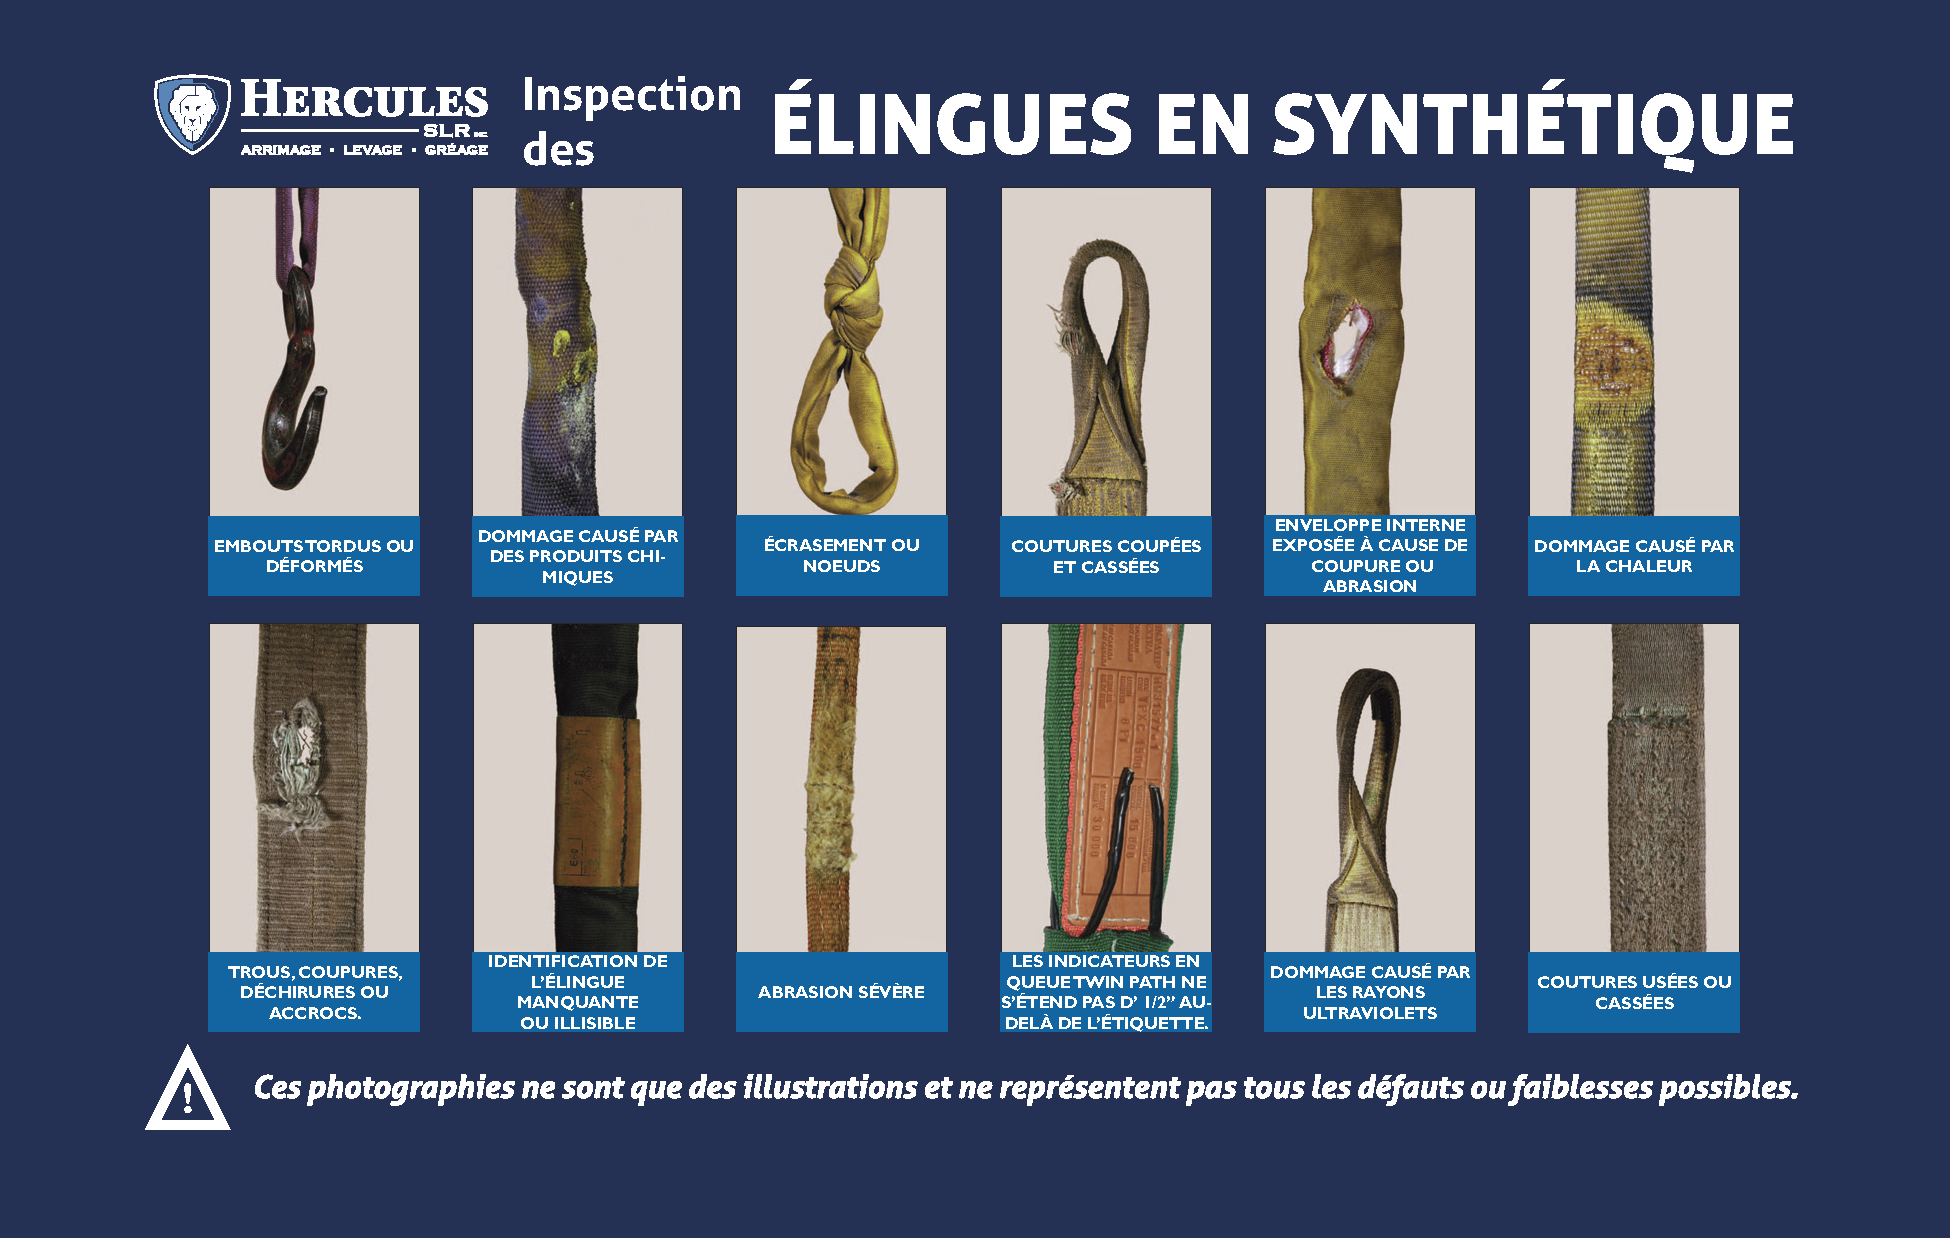 Synthetic slings inspection guide FR Page 1